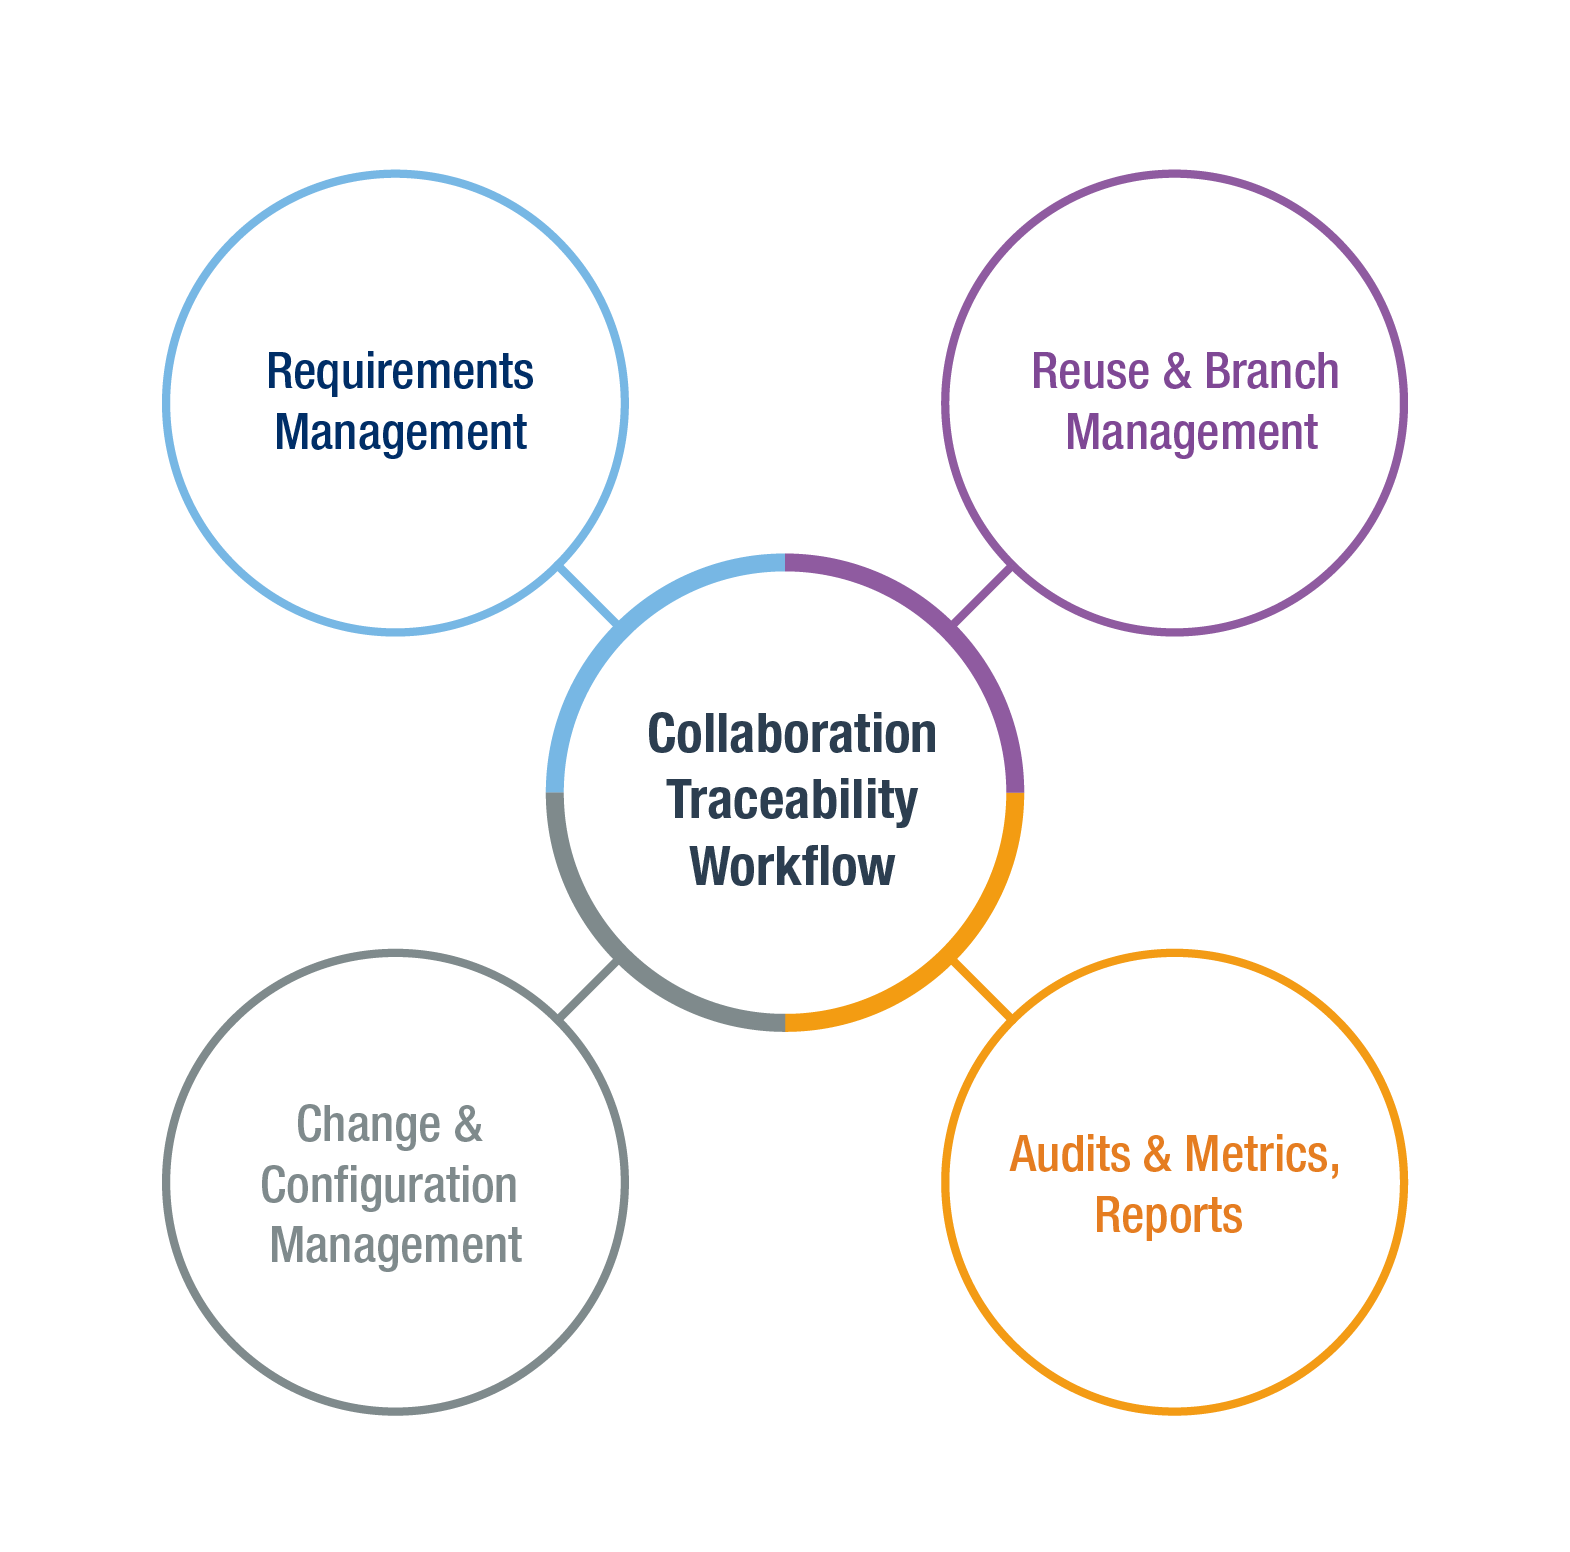 Requirements-Management-tools-Polarion-wheel.png